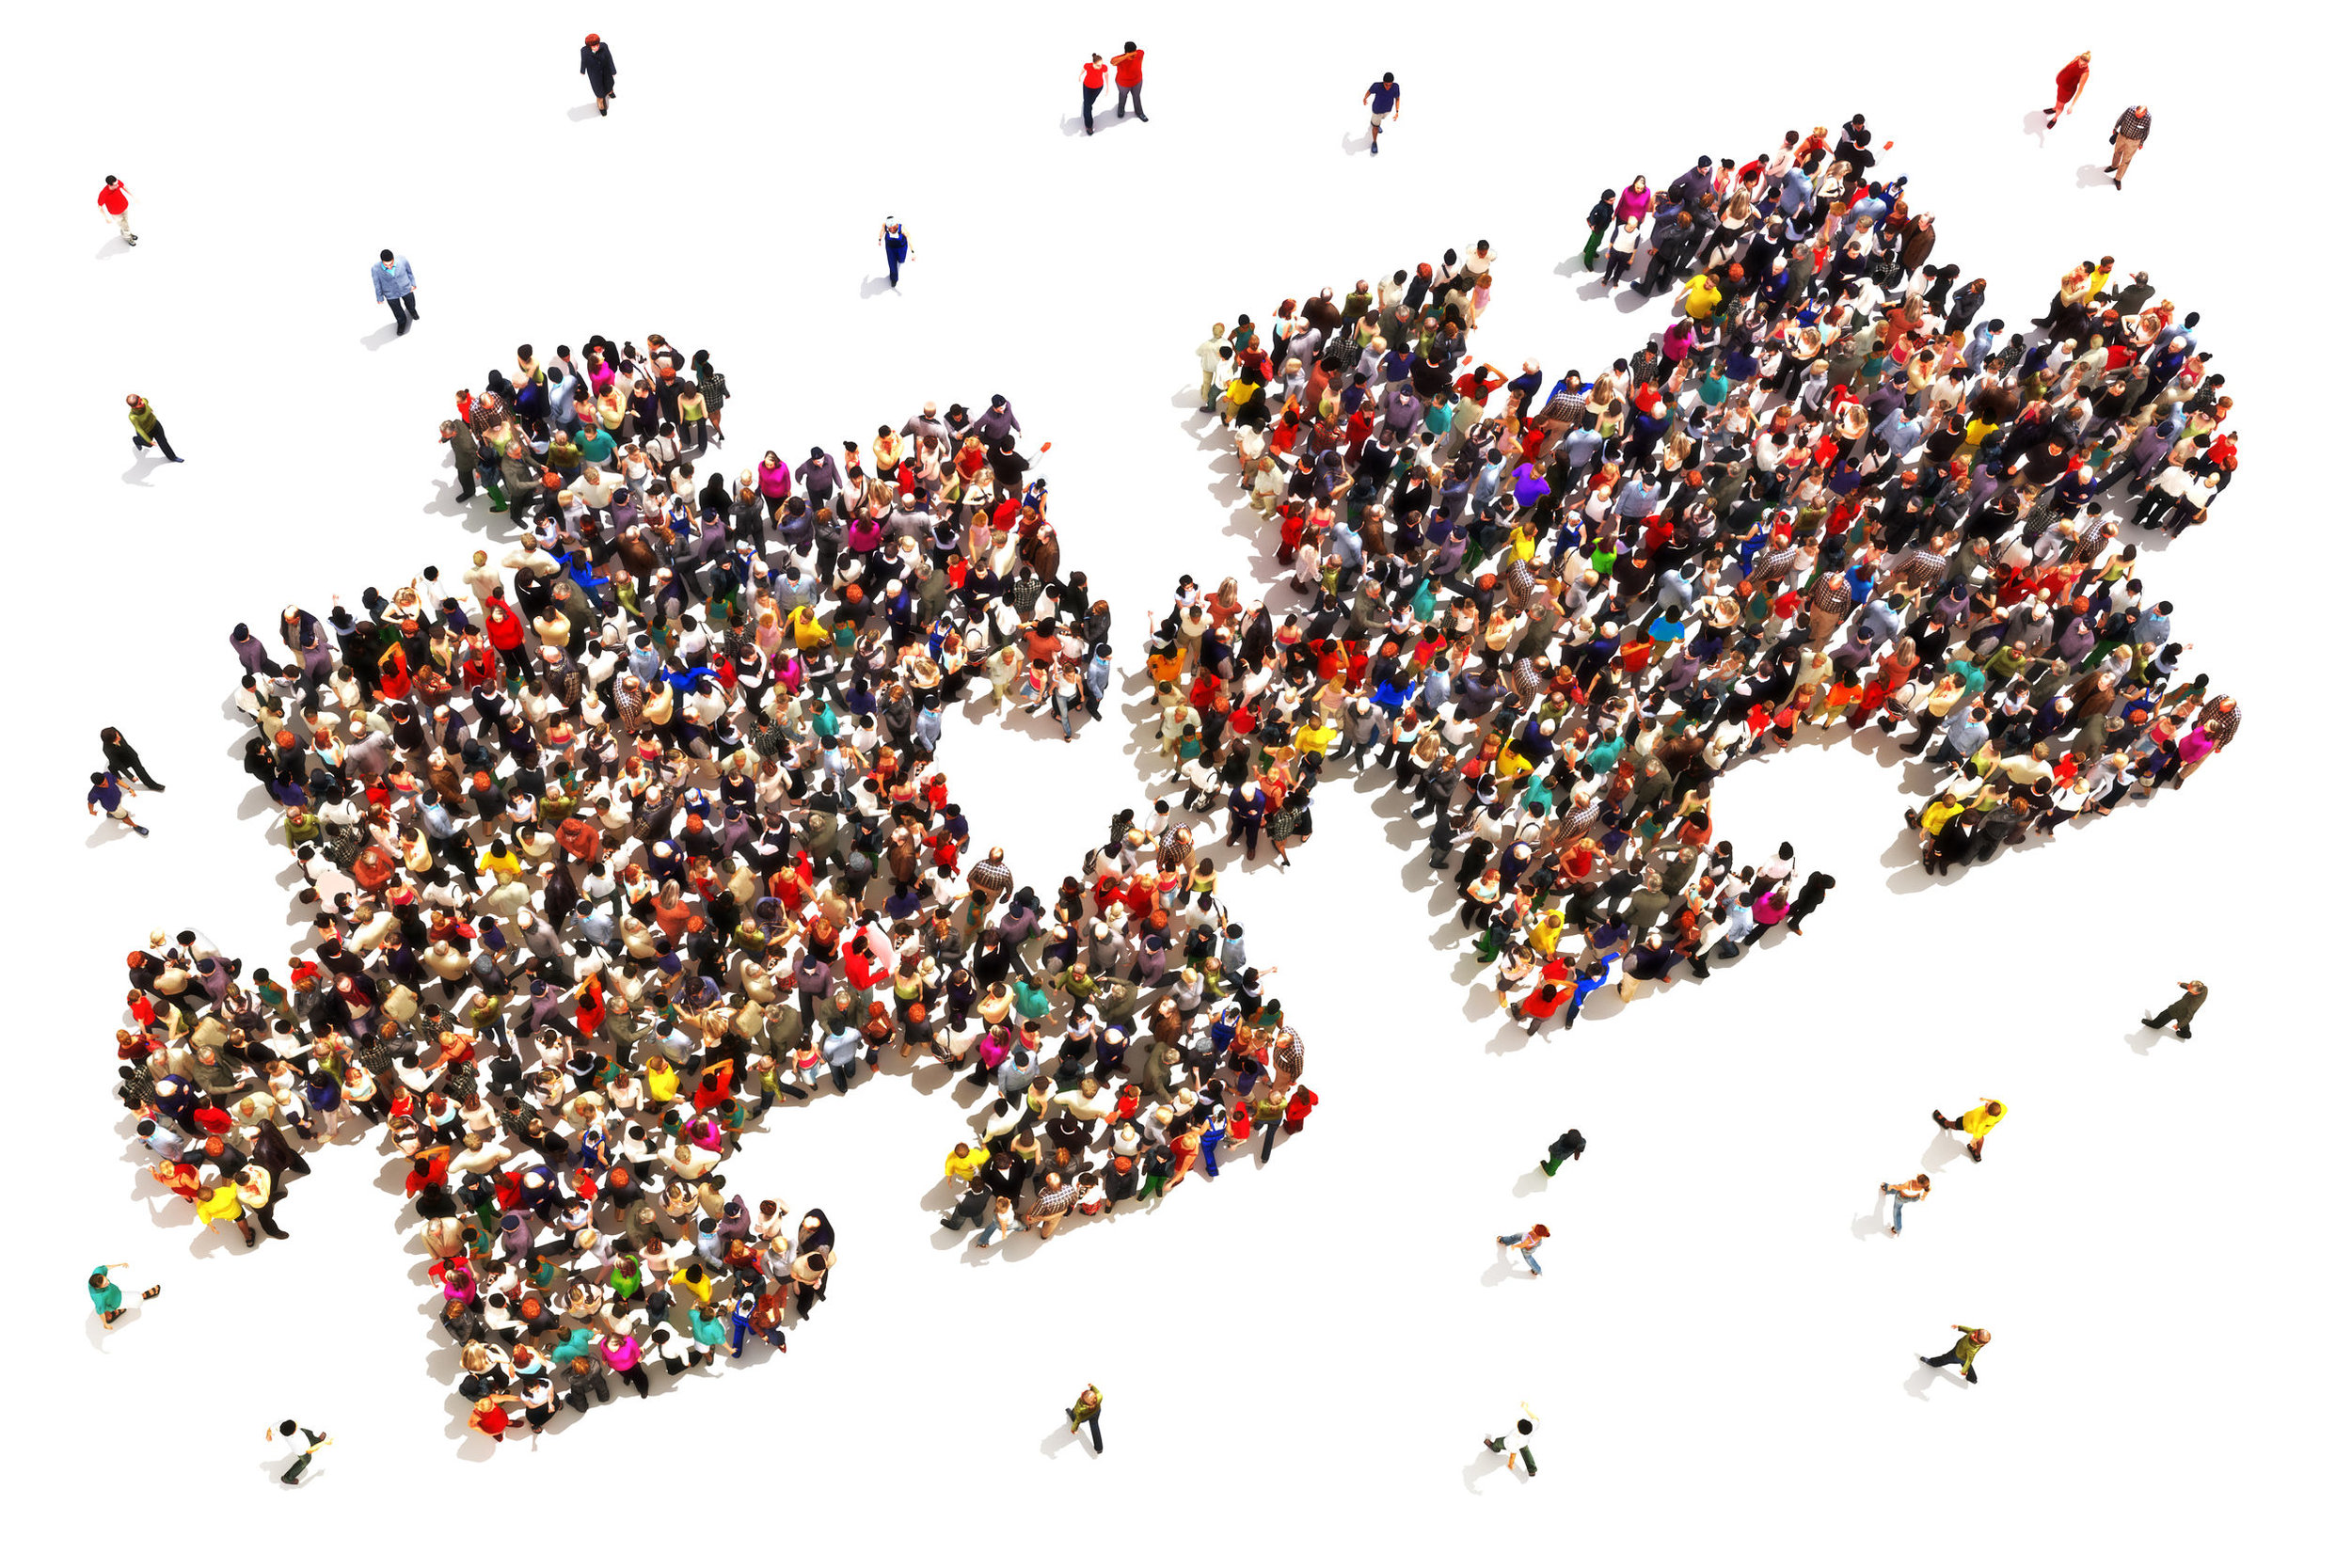 34937954 - people putting the pieces together concept . large group of people in the shape of two puzzle   pieces on a white background.